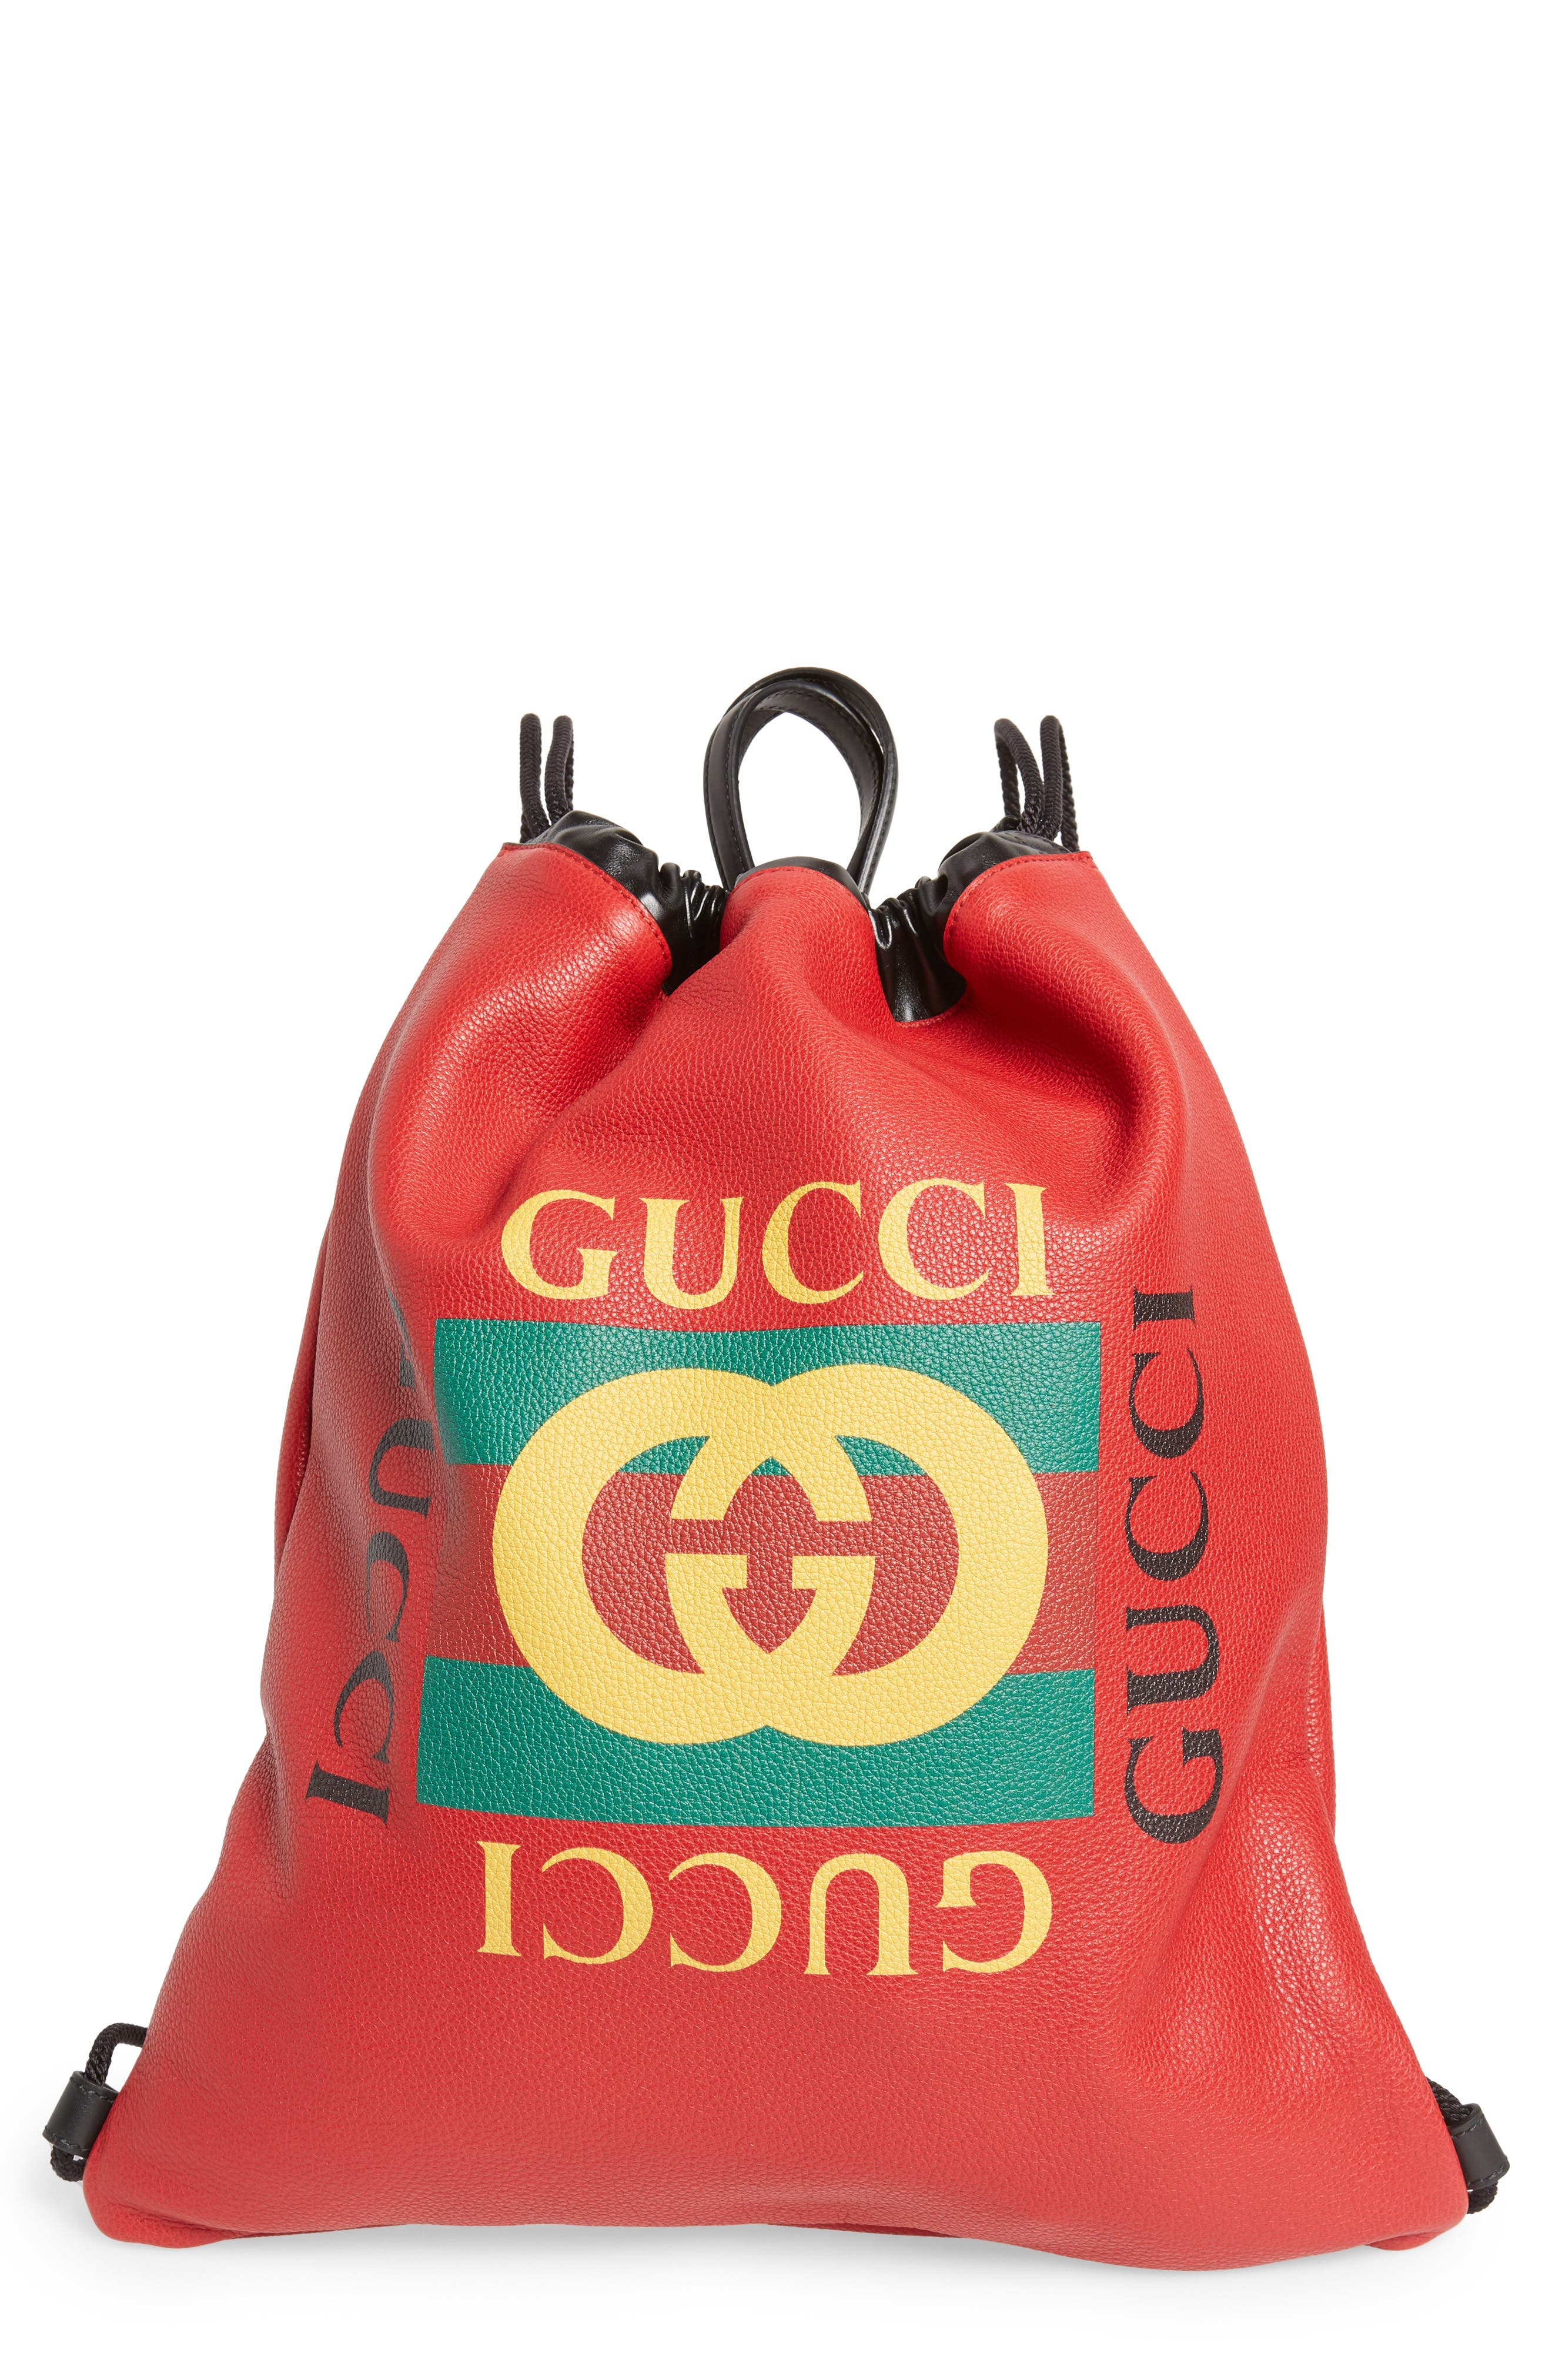 GUCCI Logo Drawstring Leather Backpack, Main, color, HIBISCUS RED/ NERO/ VERT